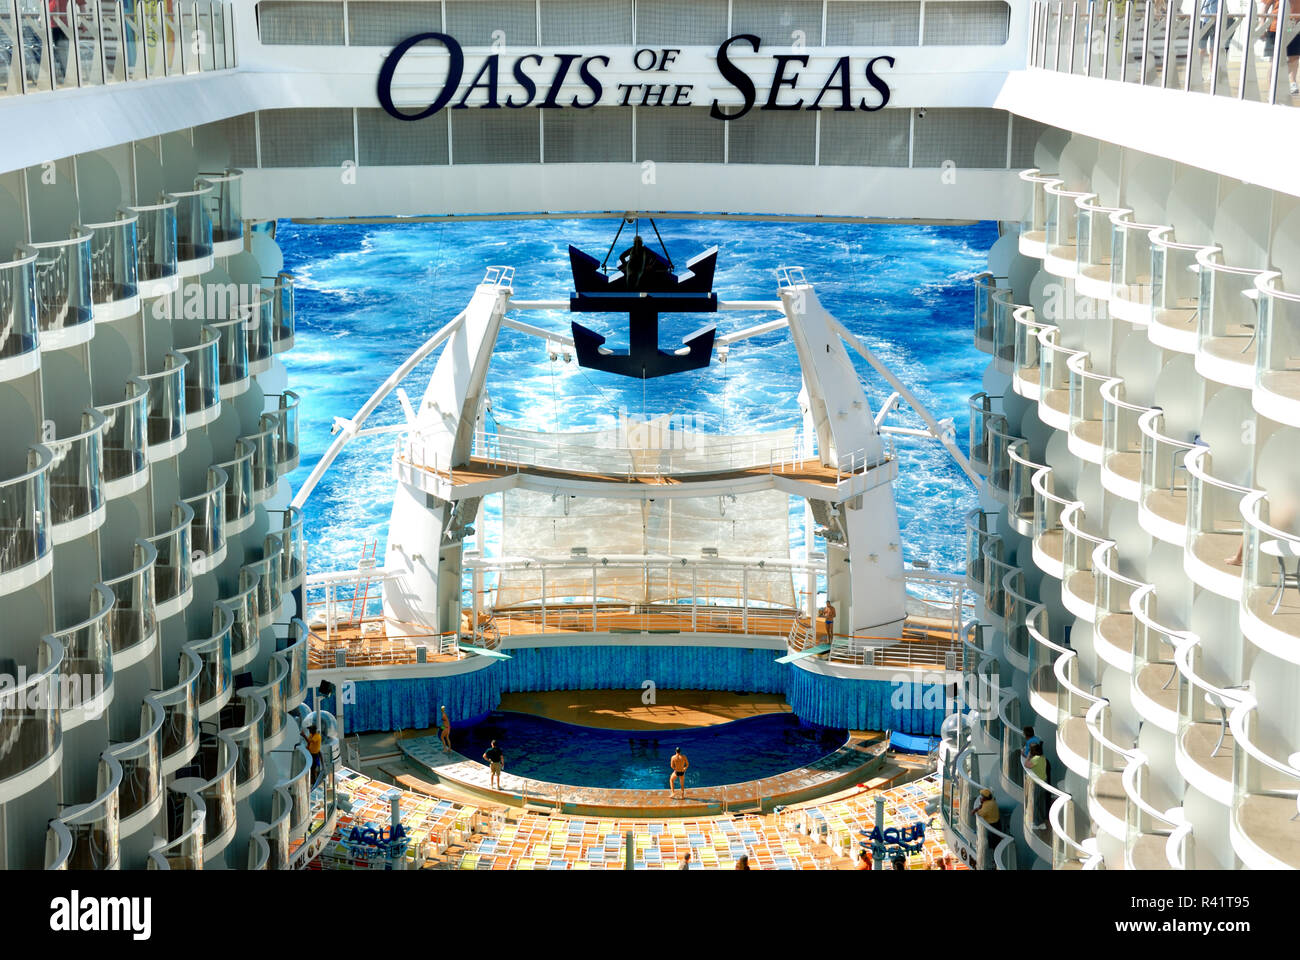 The incredible Aqua Theatre on the aft of Royal Caribbean's Oasis of the Seas hosts nighttime entertainment featuring high divers and synchronized swi - Stock Image